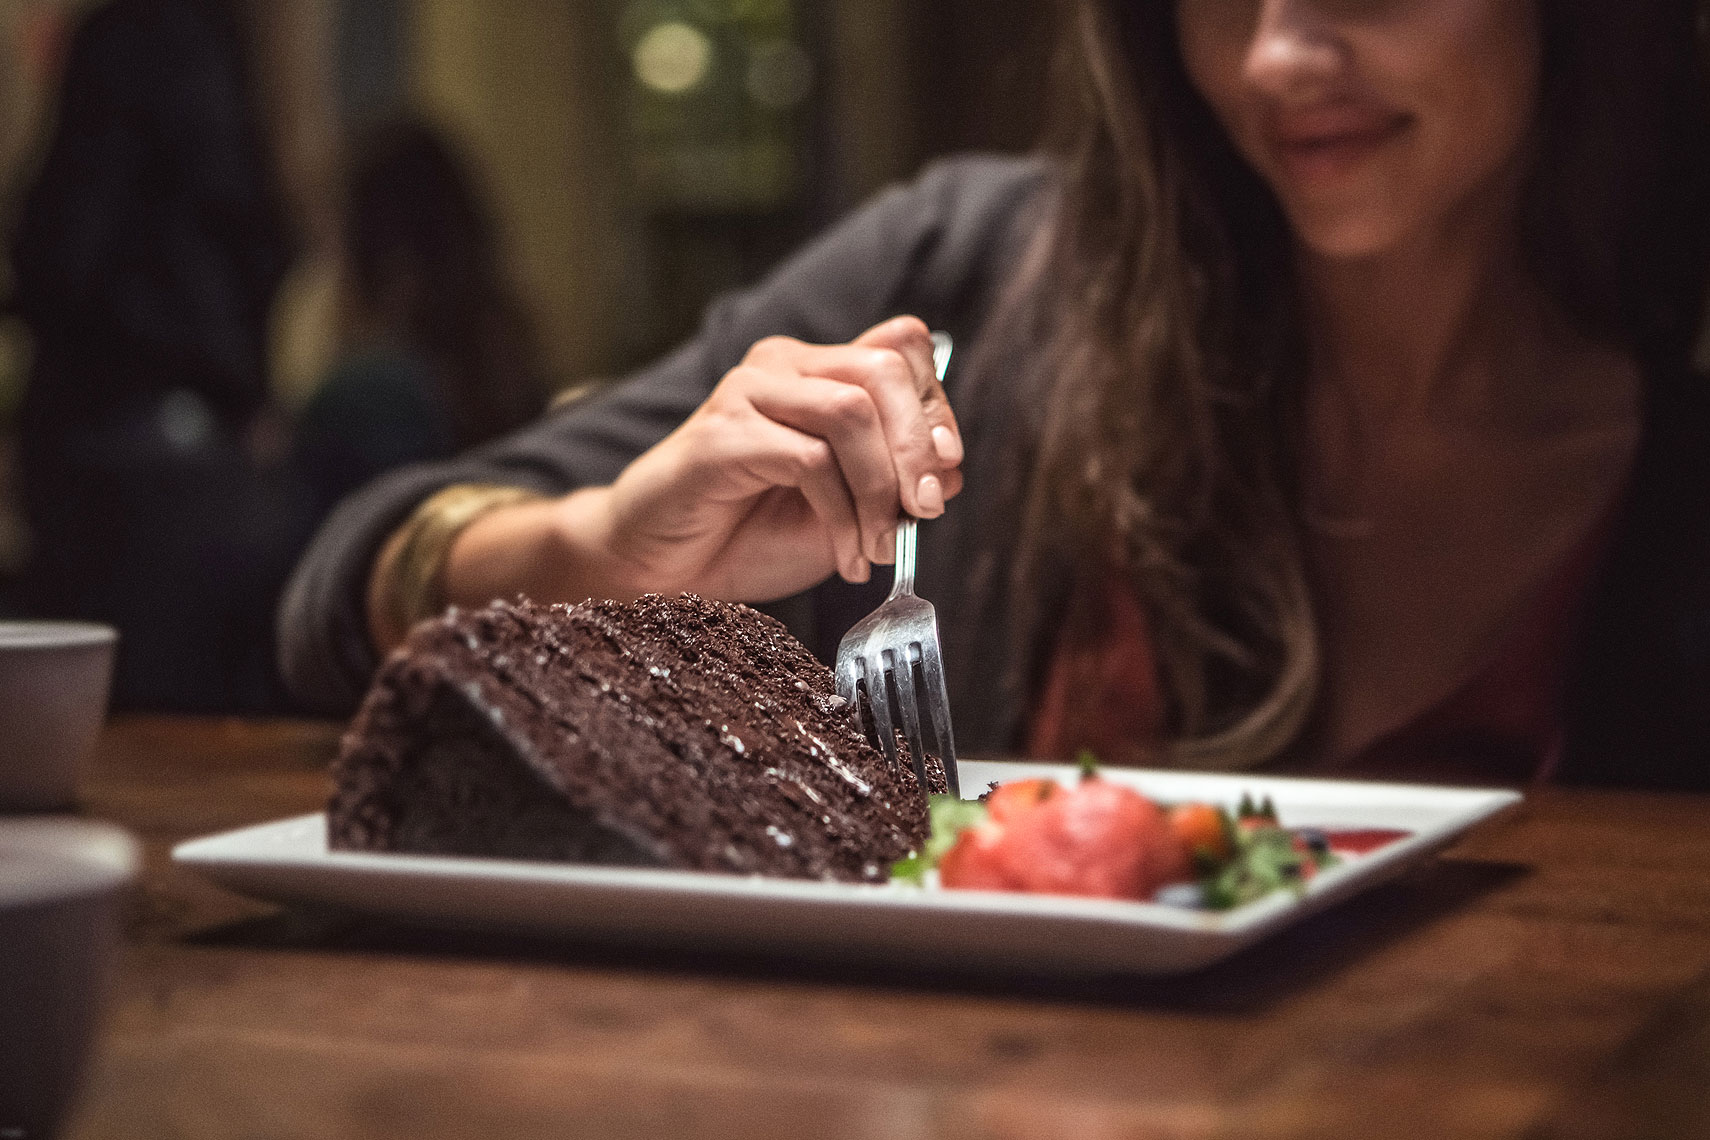 Women taking a bite out of a large piece of chocolate cake | P. F. Chang